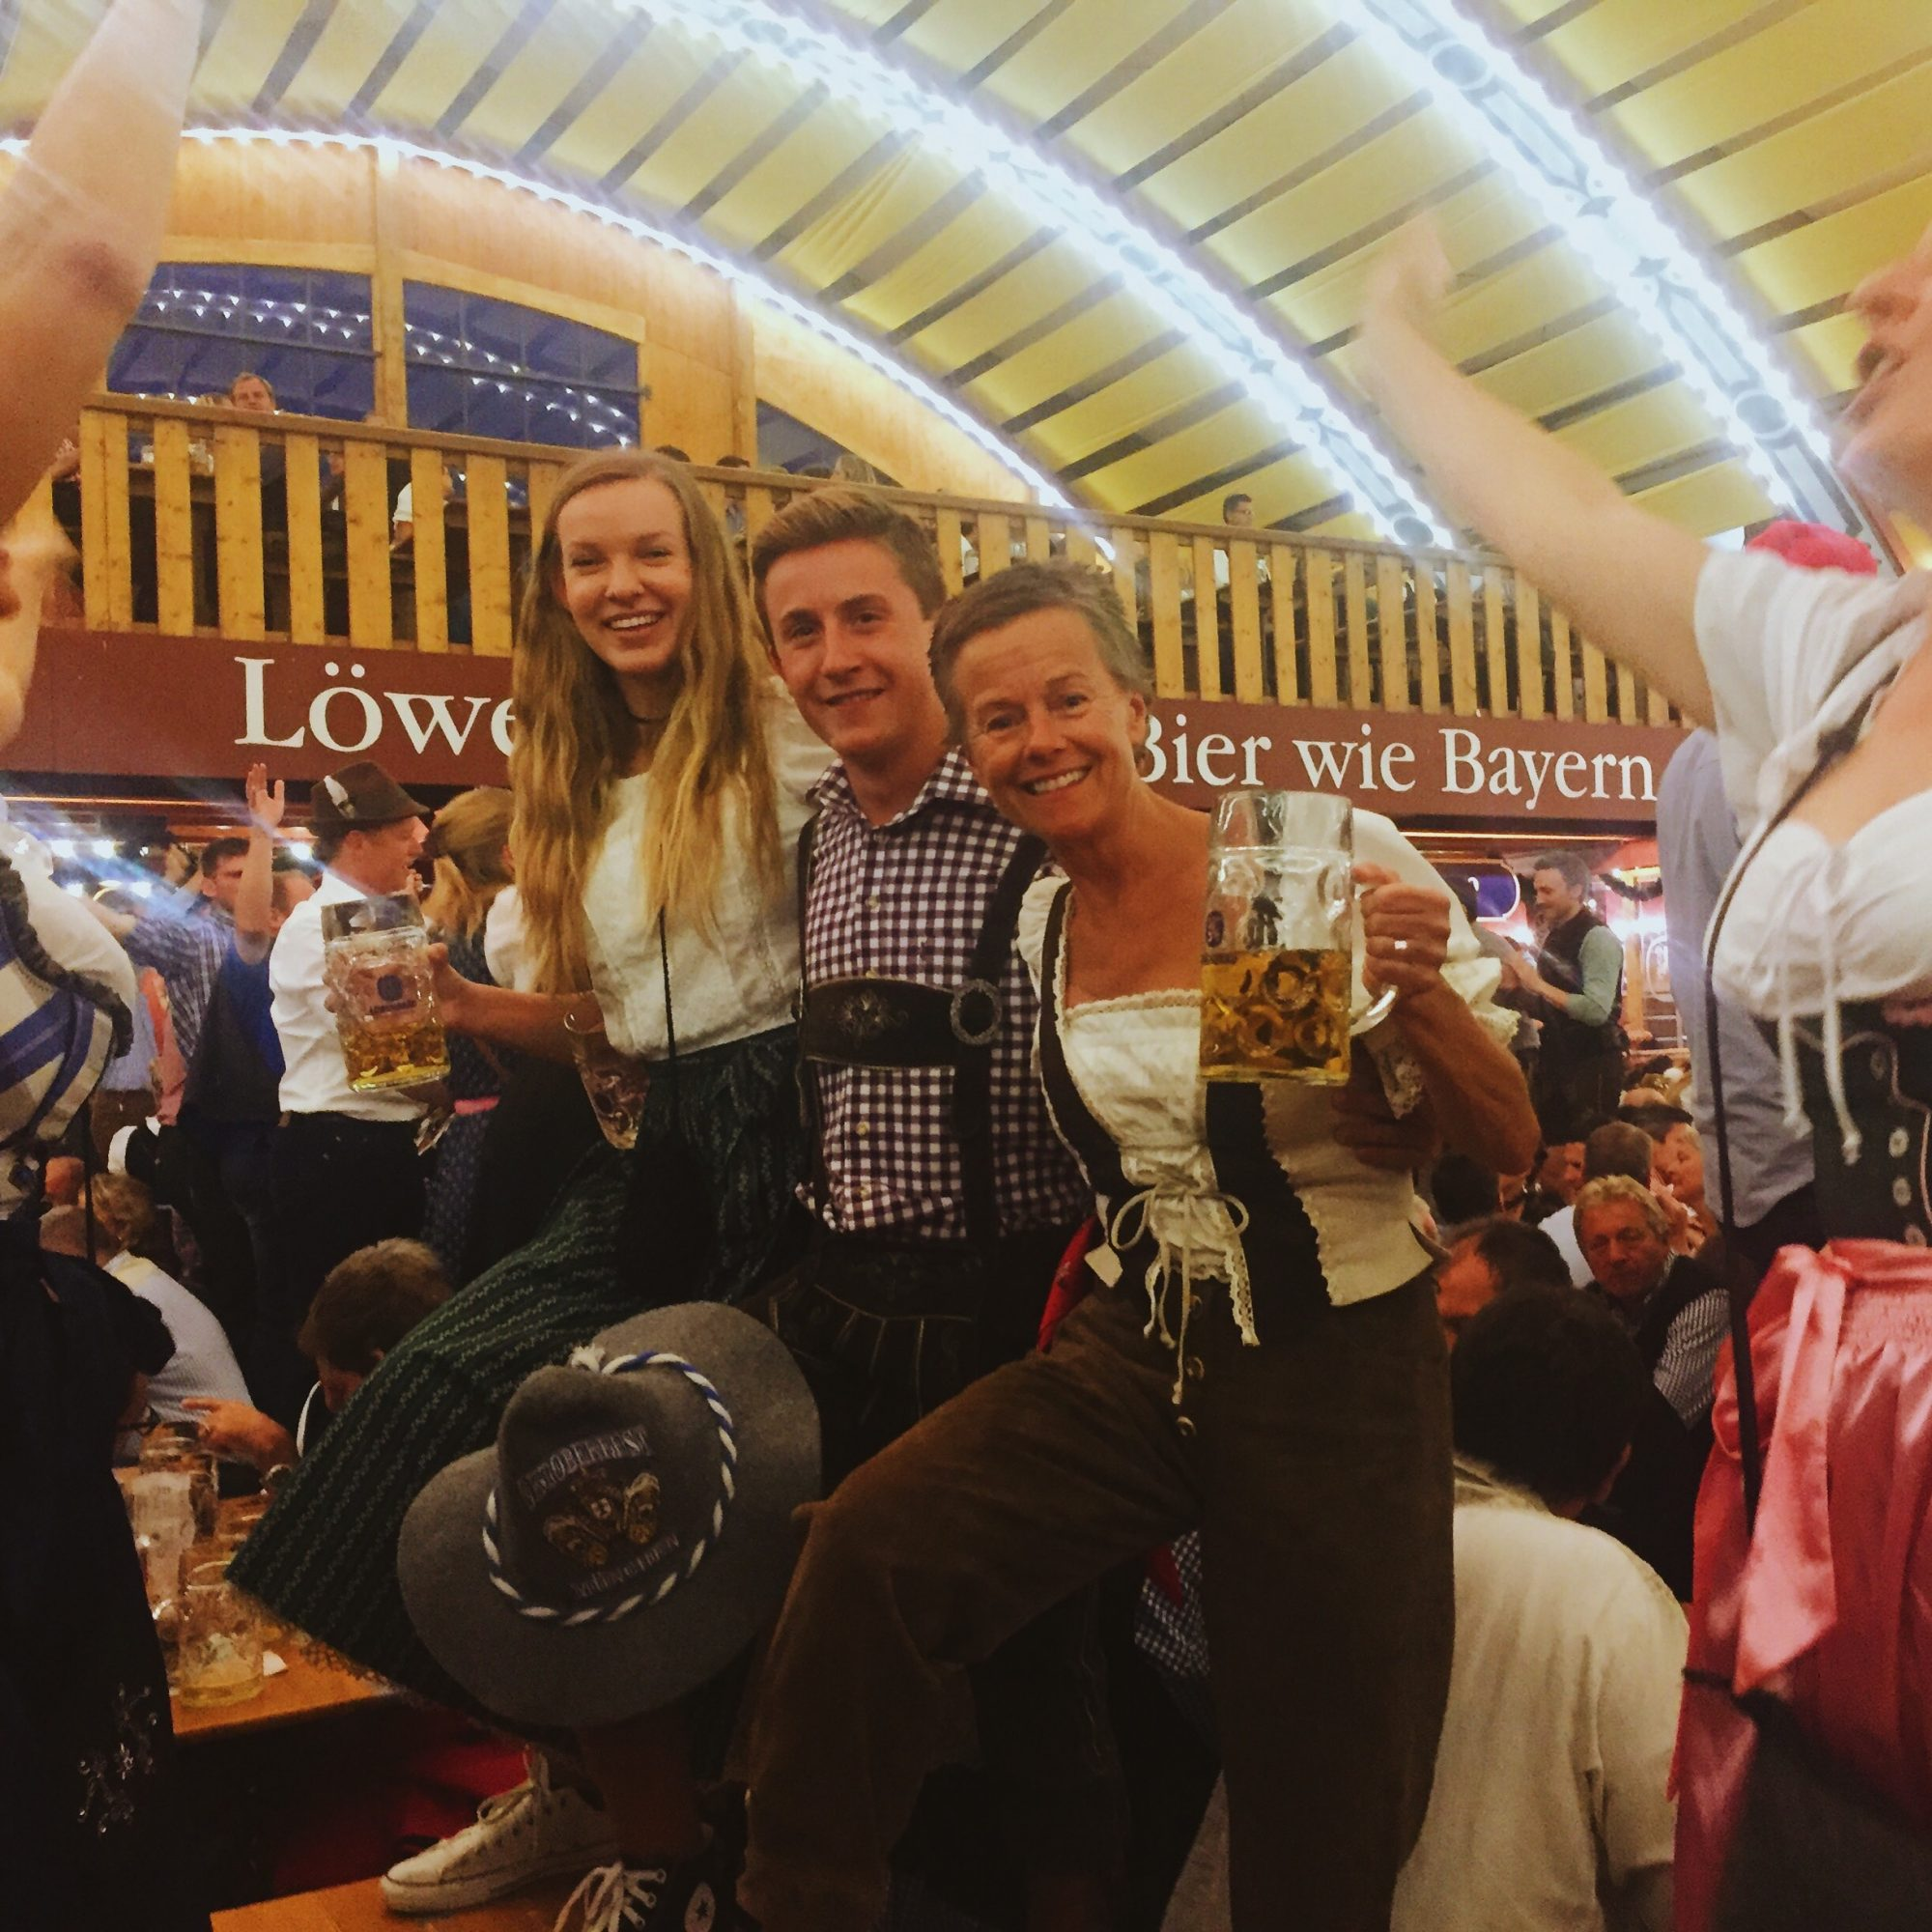 Myself, Noah and his mom at Oktoberfest! Noah's mom has connections in Munich so we were lucky enough to have dirndls and lederhosen provided to us and a reserved table at the Lowenbrau Haus, a true Bavarian experience!